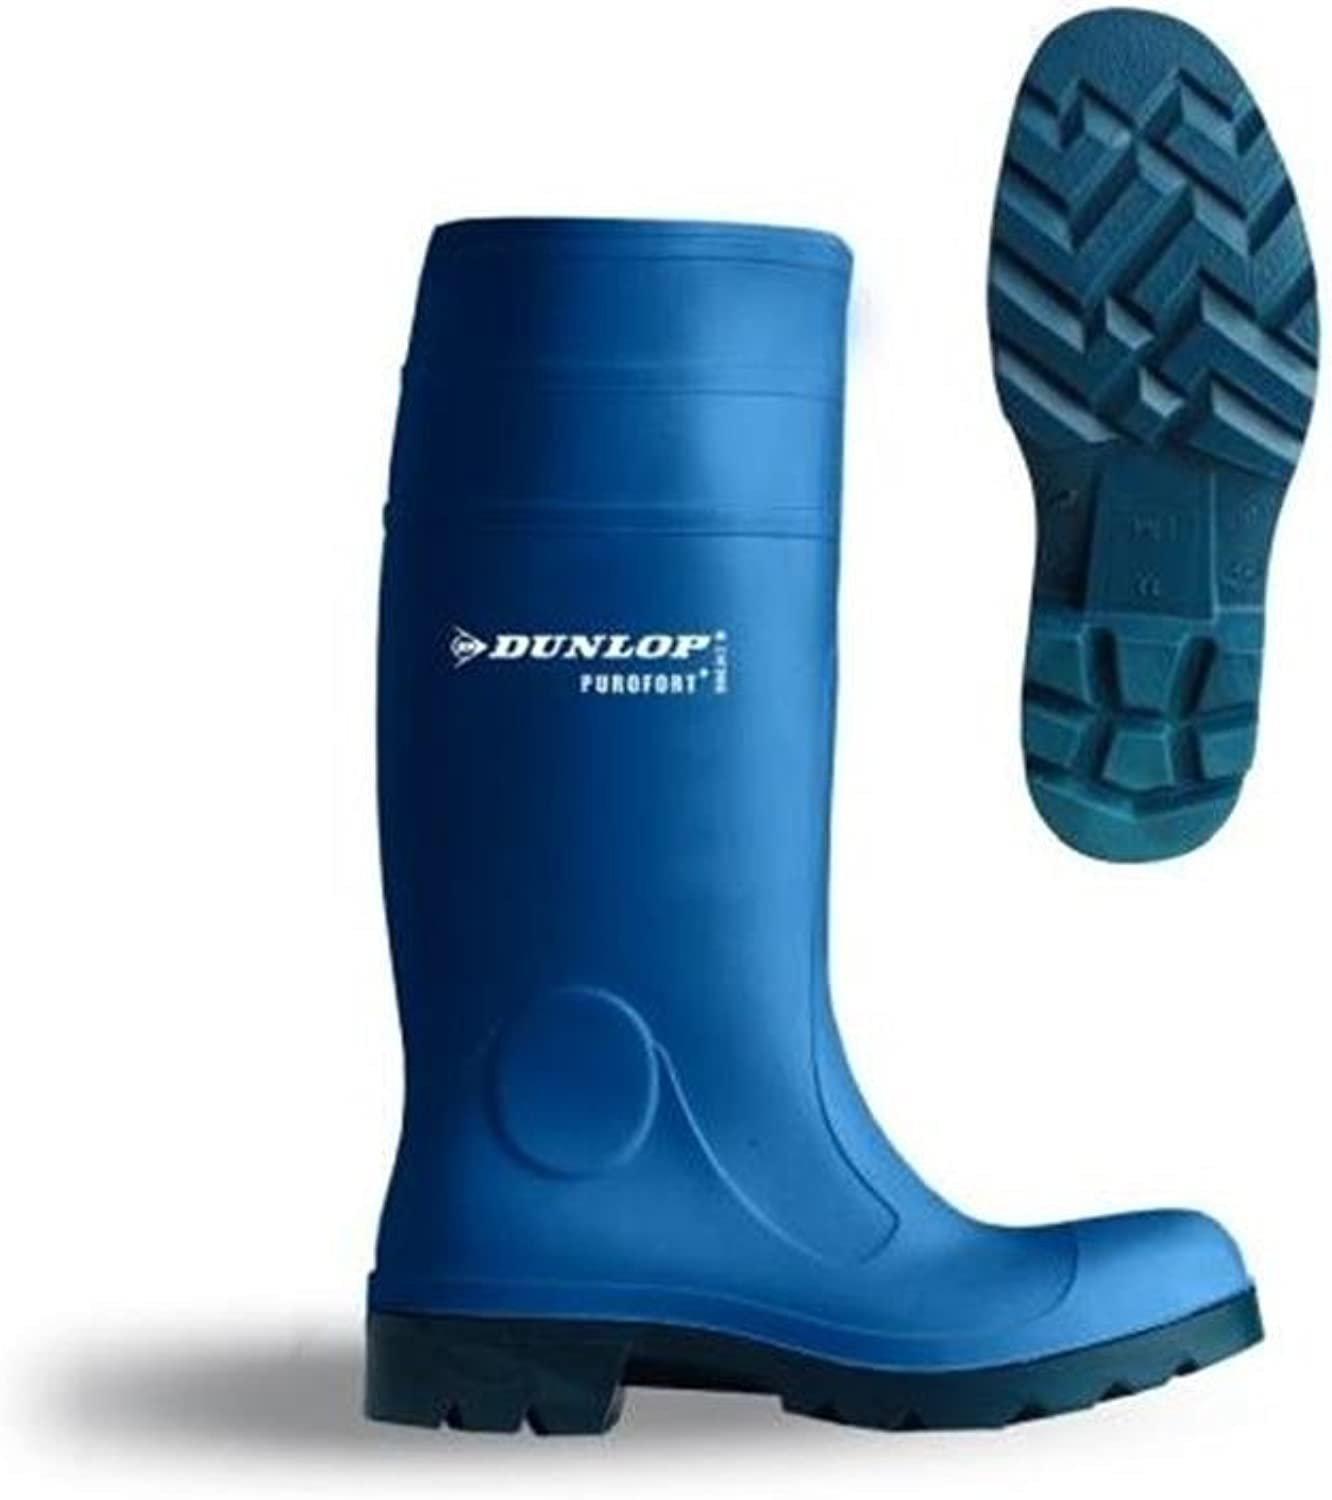 Dunlop Purofort Wellington Boots Metzger Boots bluee with Steel Toe Cap Work Boots Size  13